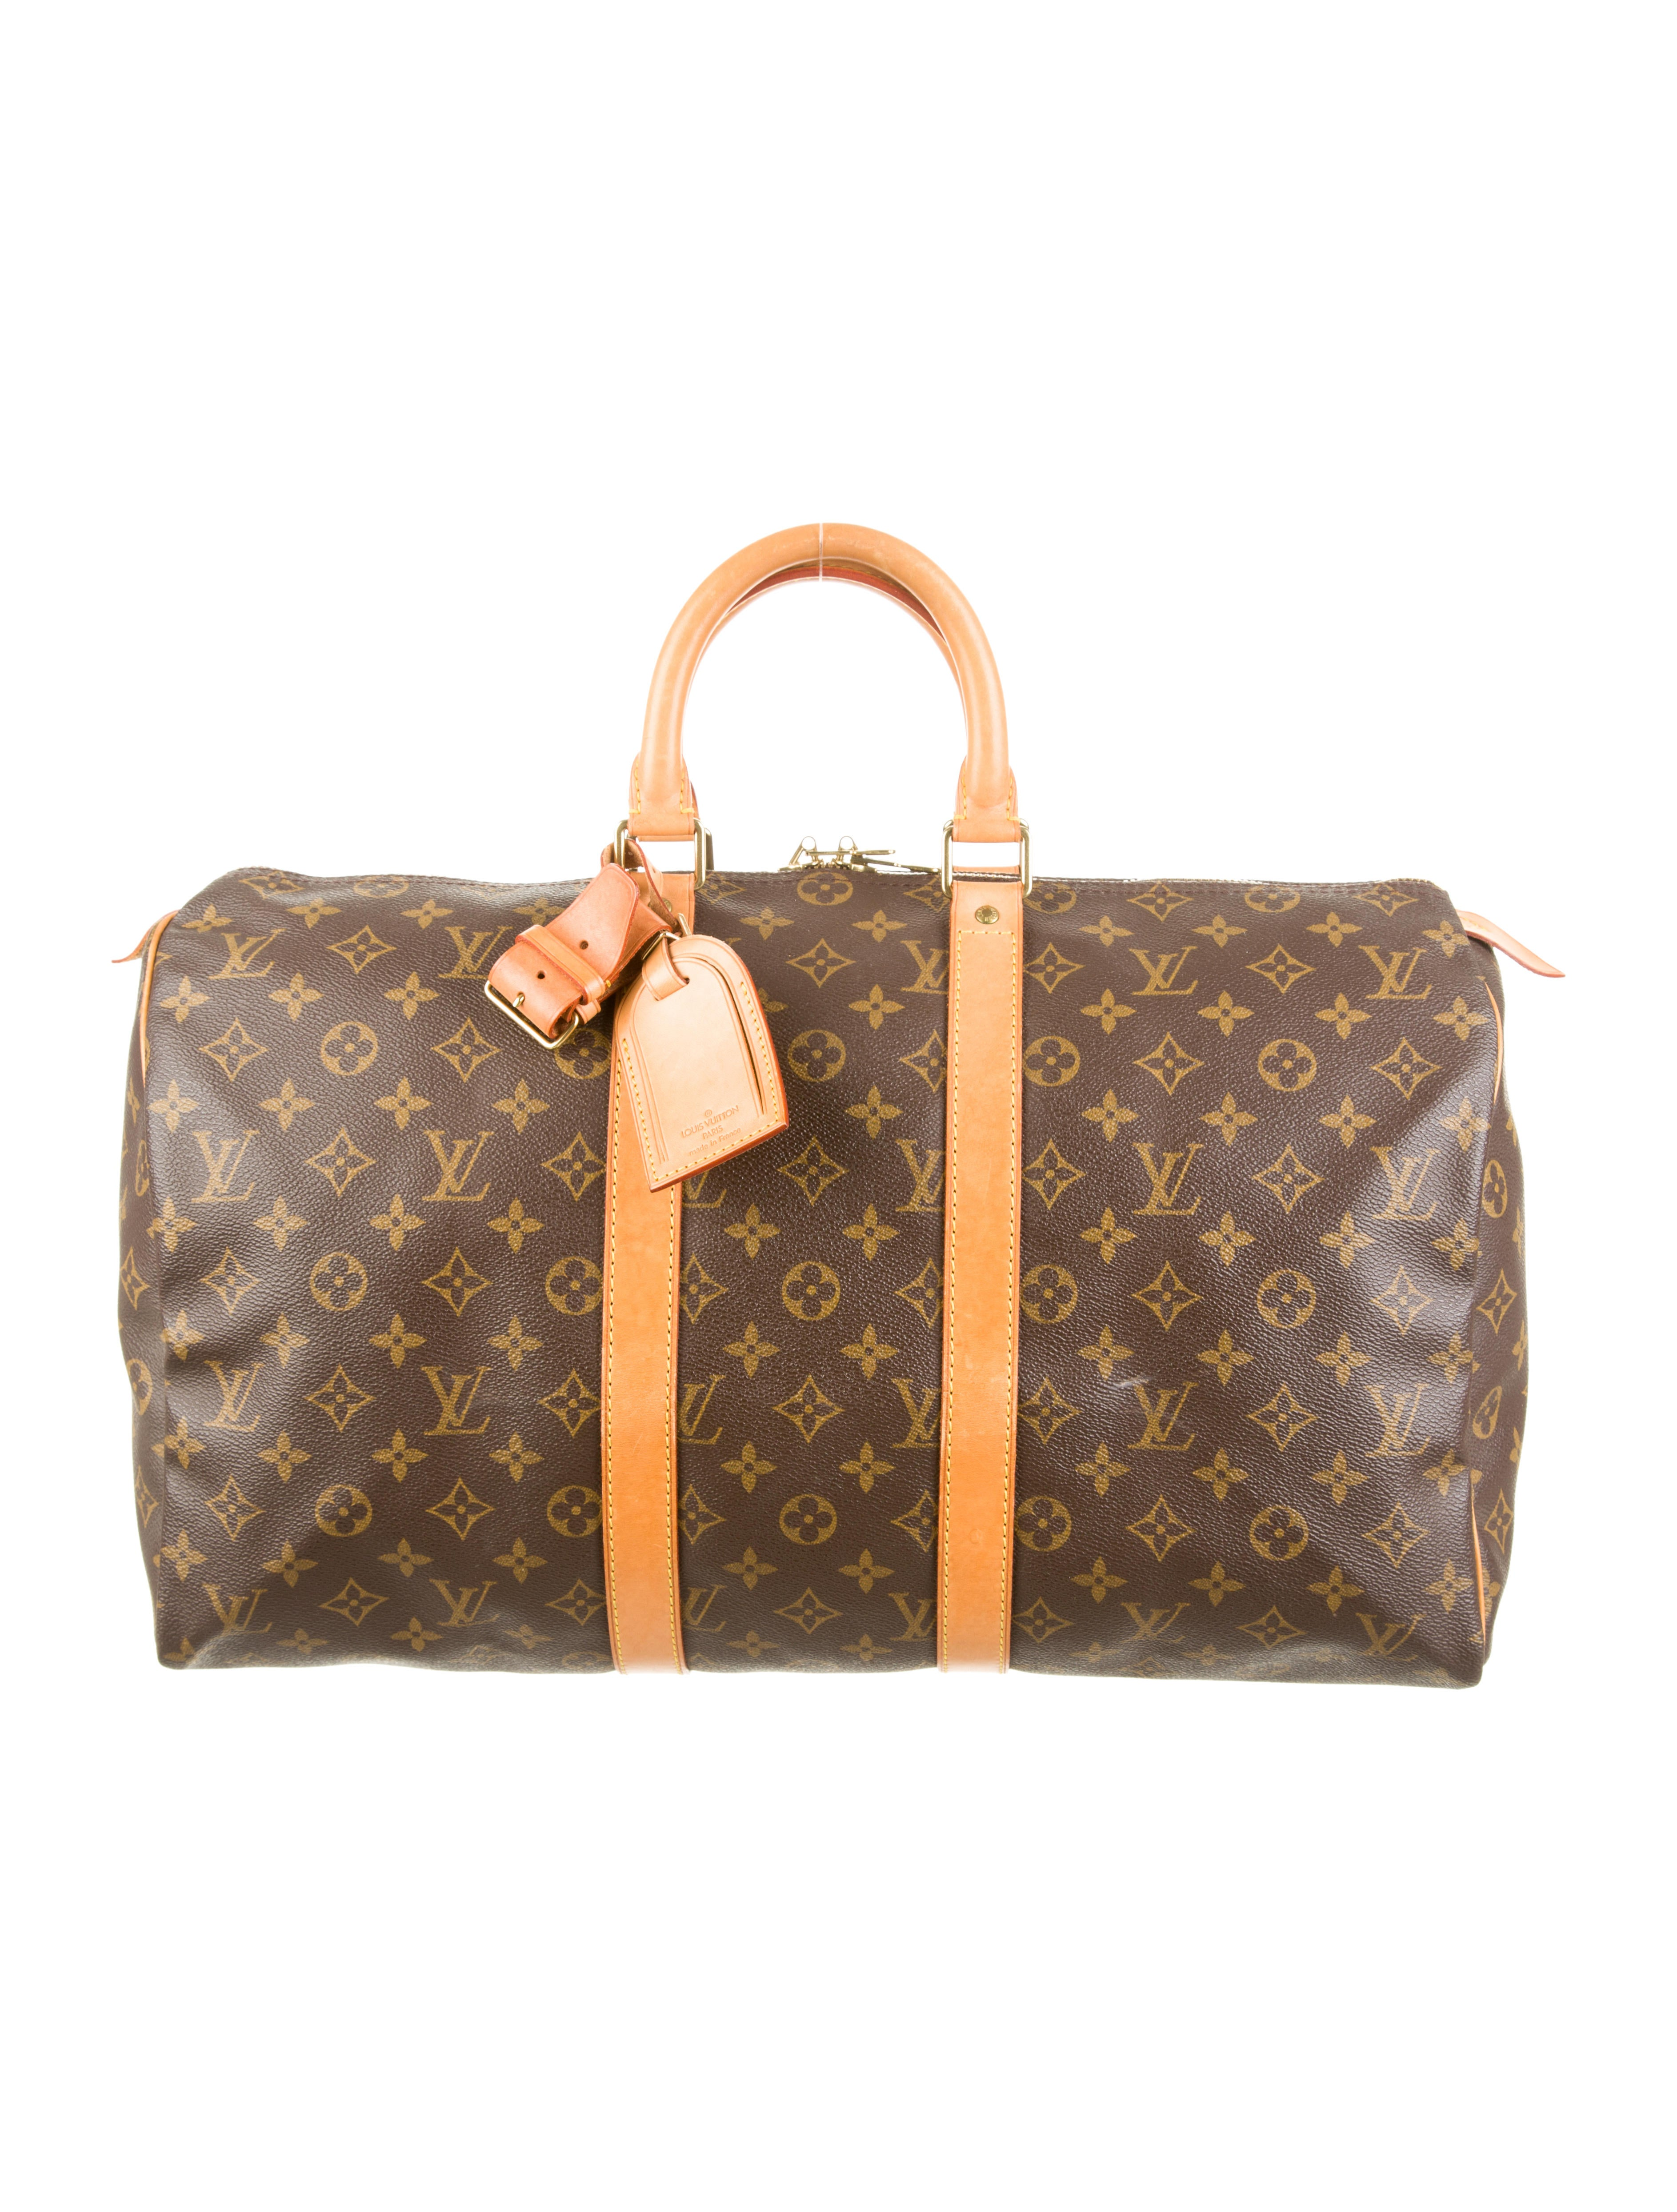 louis vuitton keepall 45 handbags lou55056 the realreal. Black Bedroom Furniture Sets. Home Design Ideas